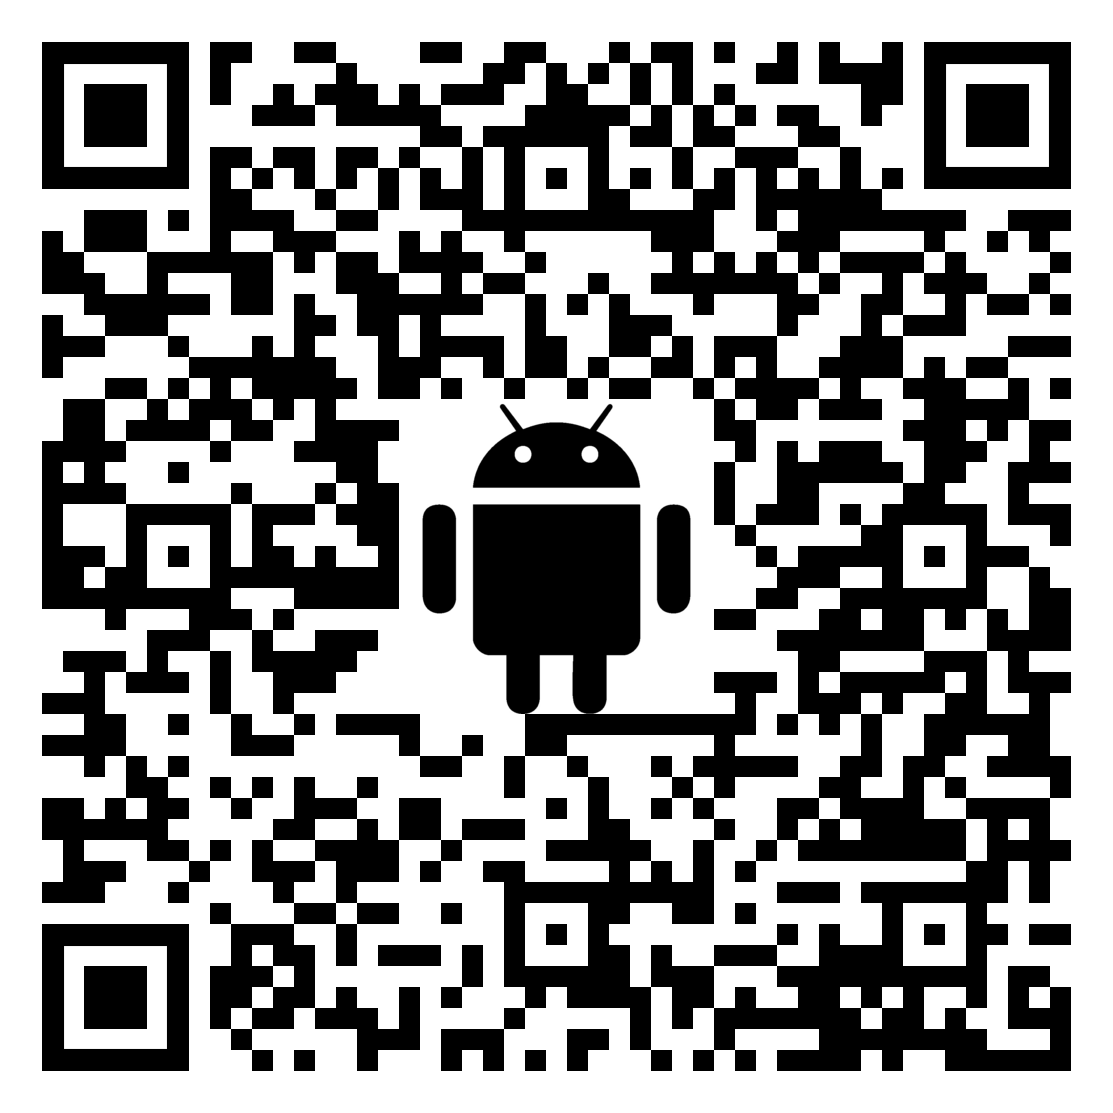 QR code for SKYE View 2 app on Google Play